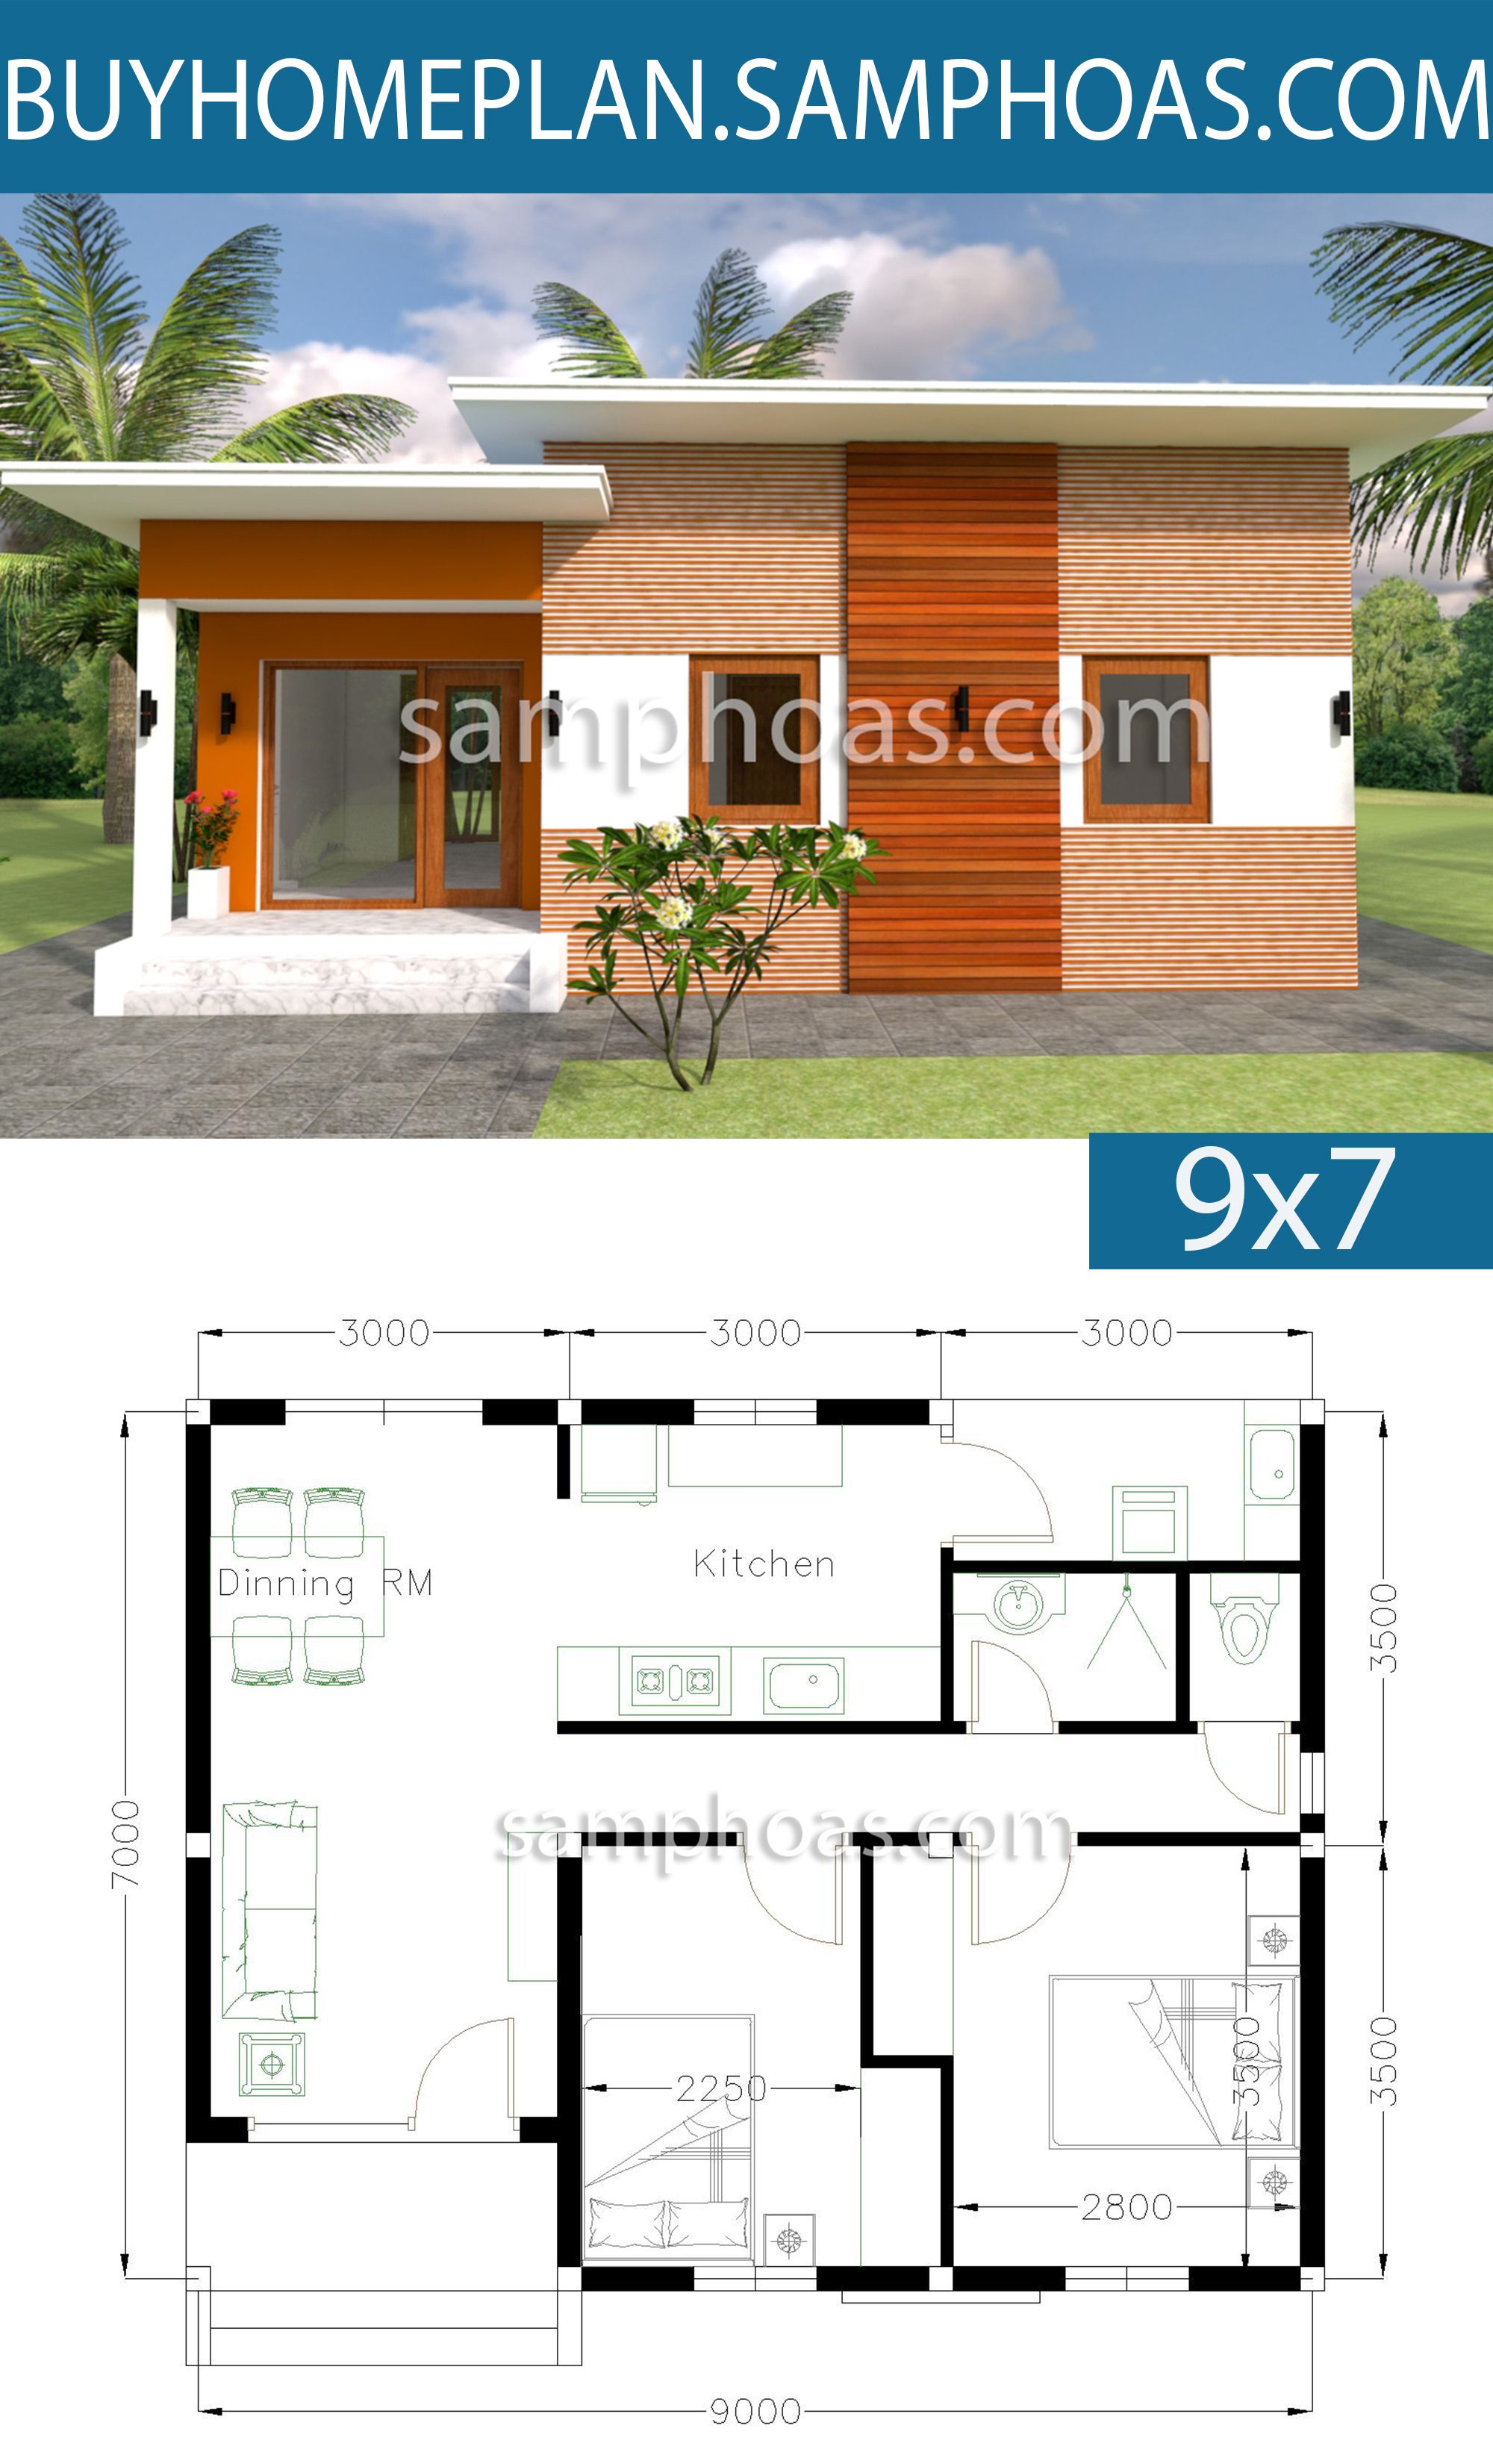 House Plans 9x7m With 2 Bedrooms House Plans Free Downloads House Layout Plans Architectural Design House Plans Small Modern House Plans